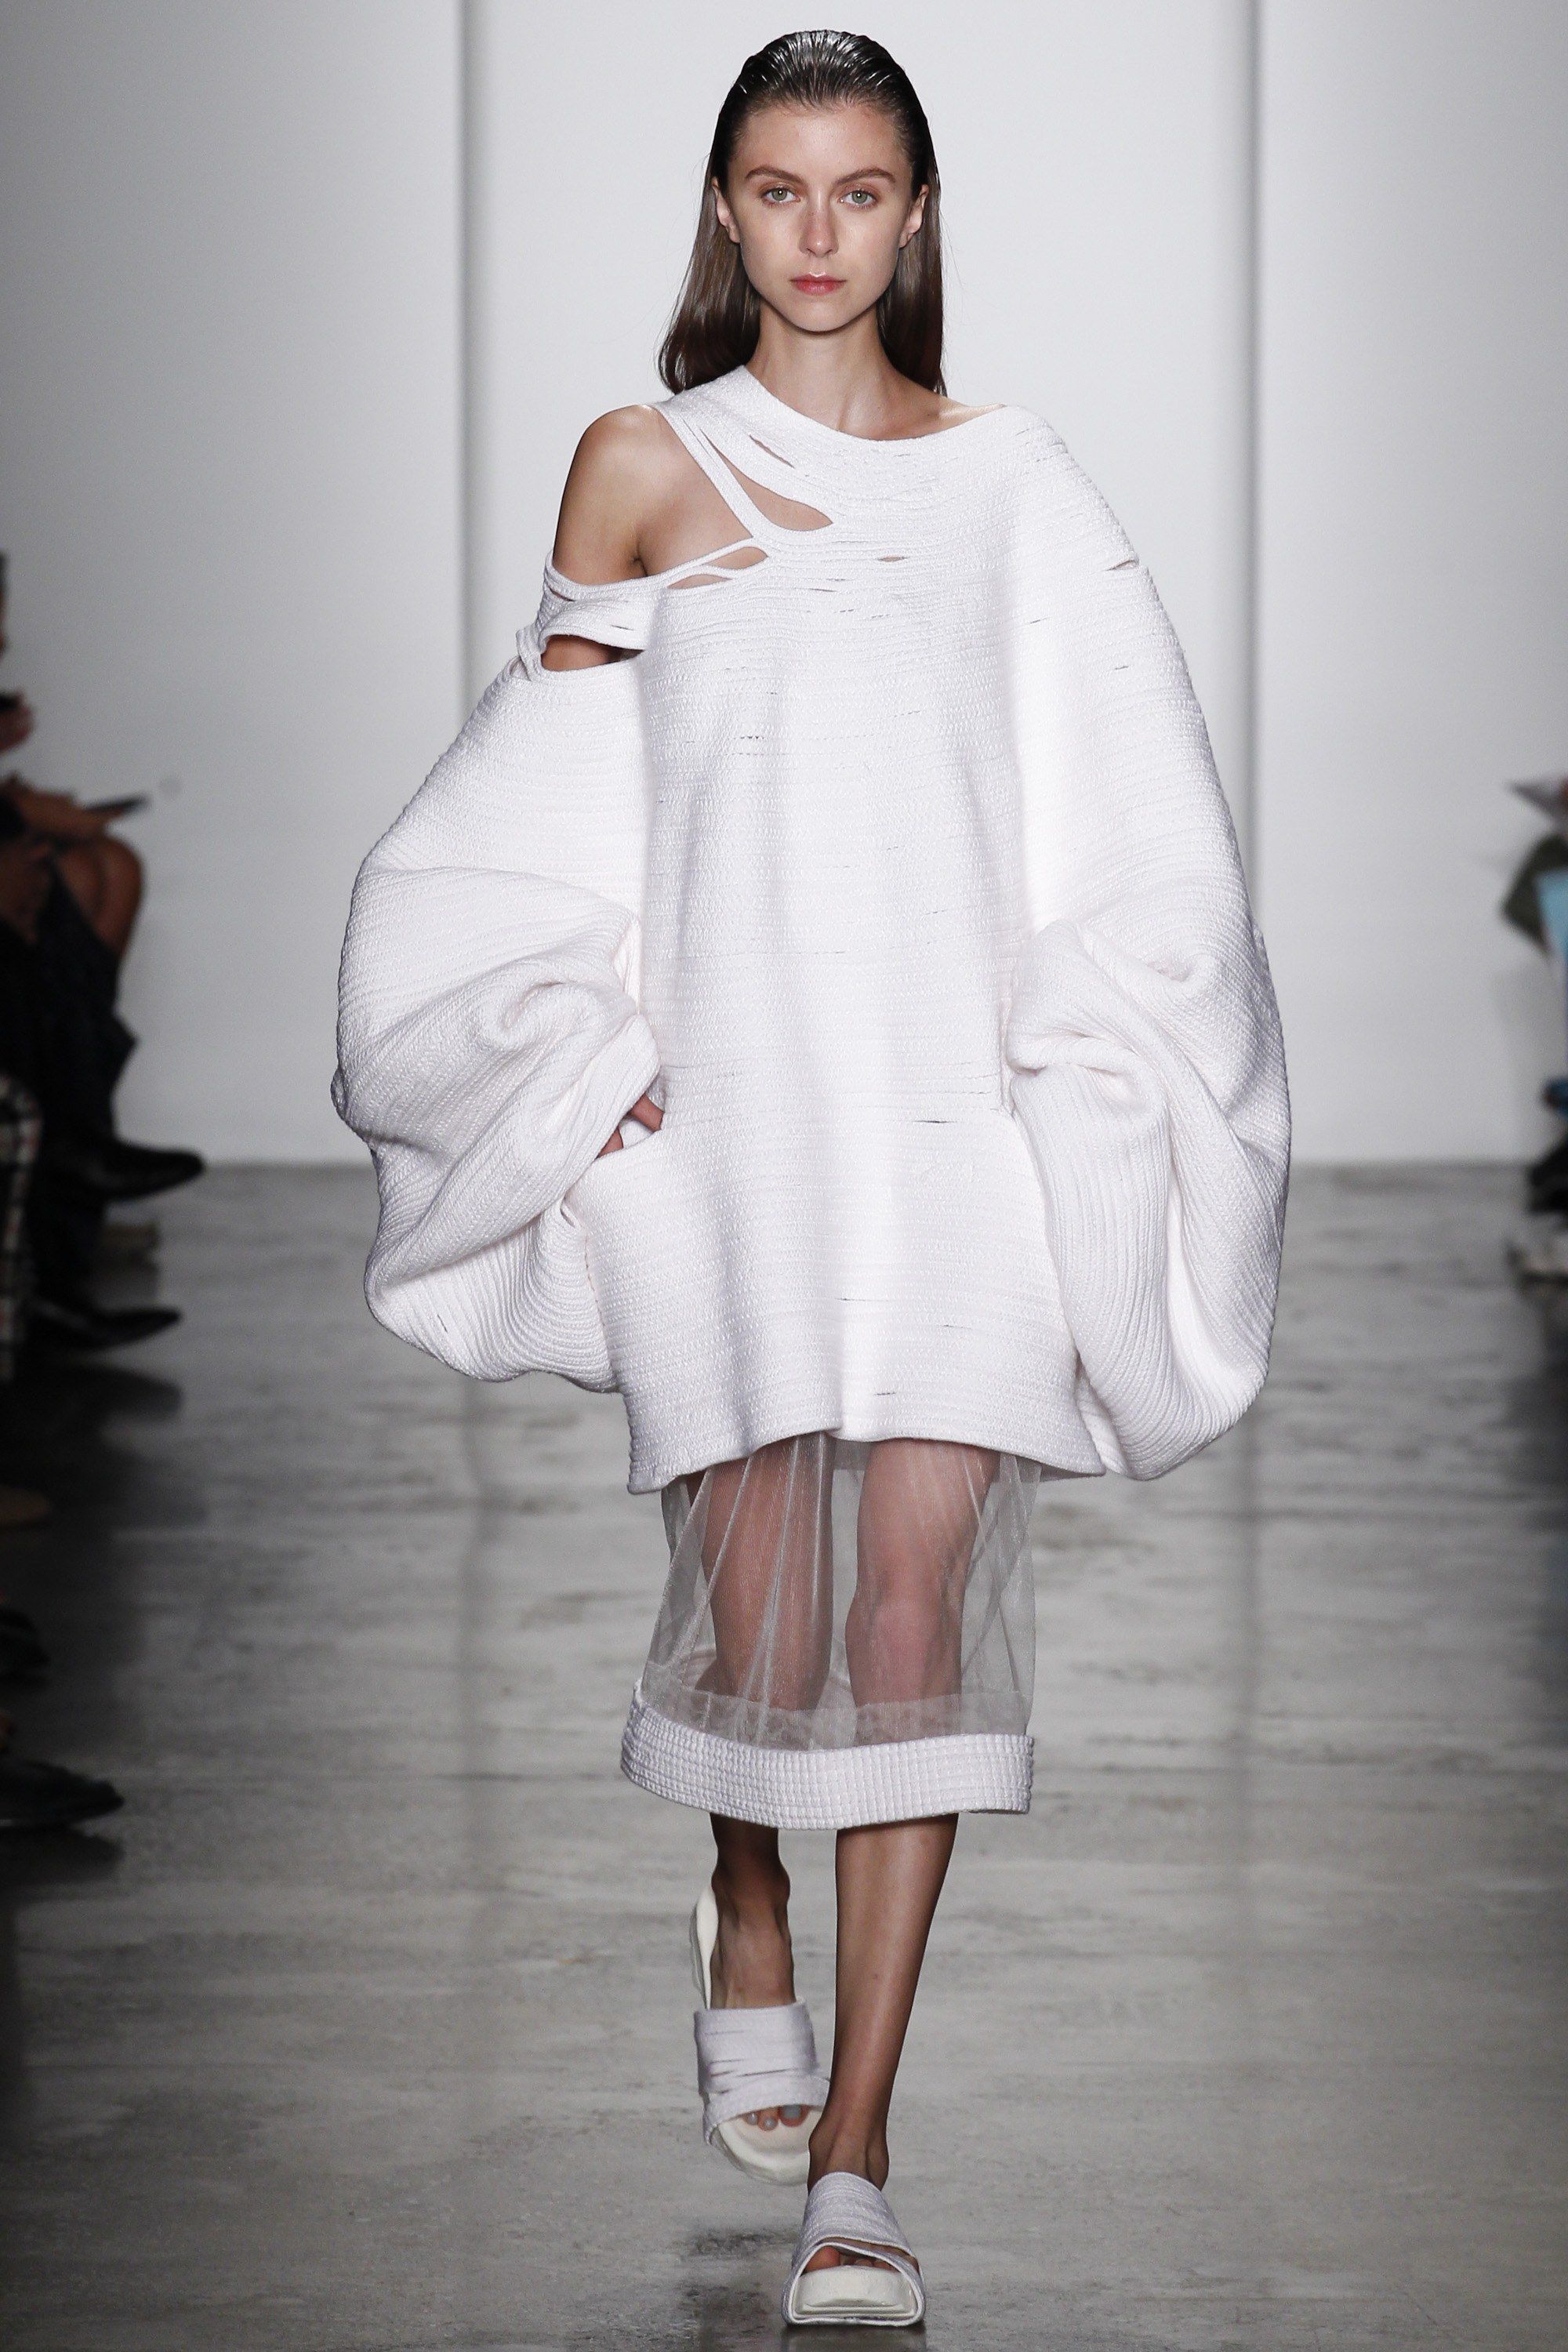 Parsons Mfa Fashion Show